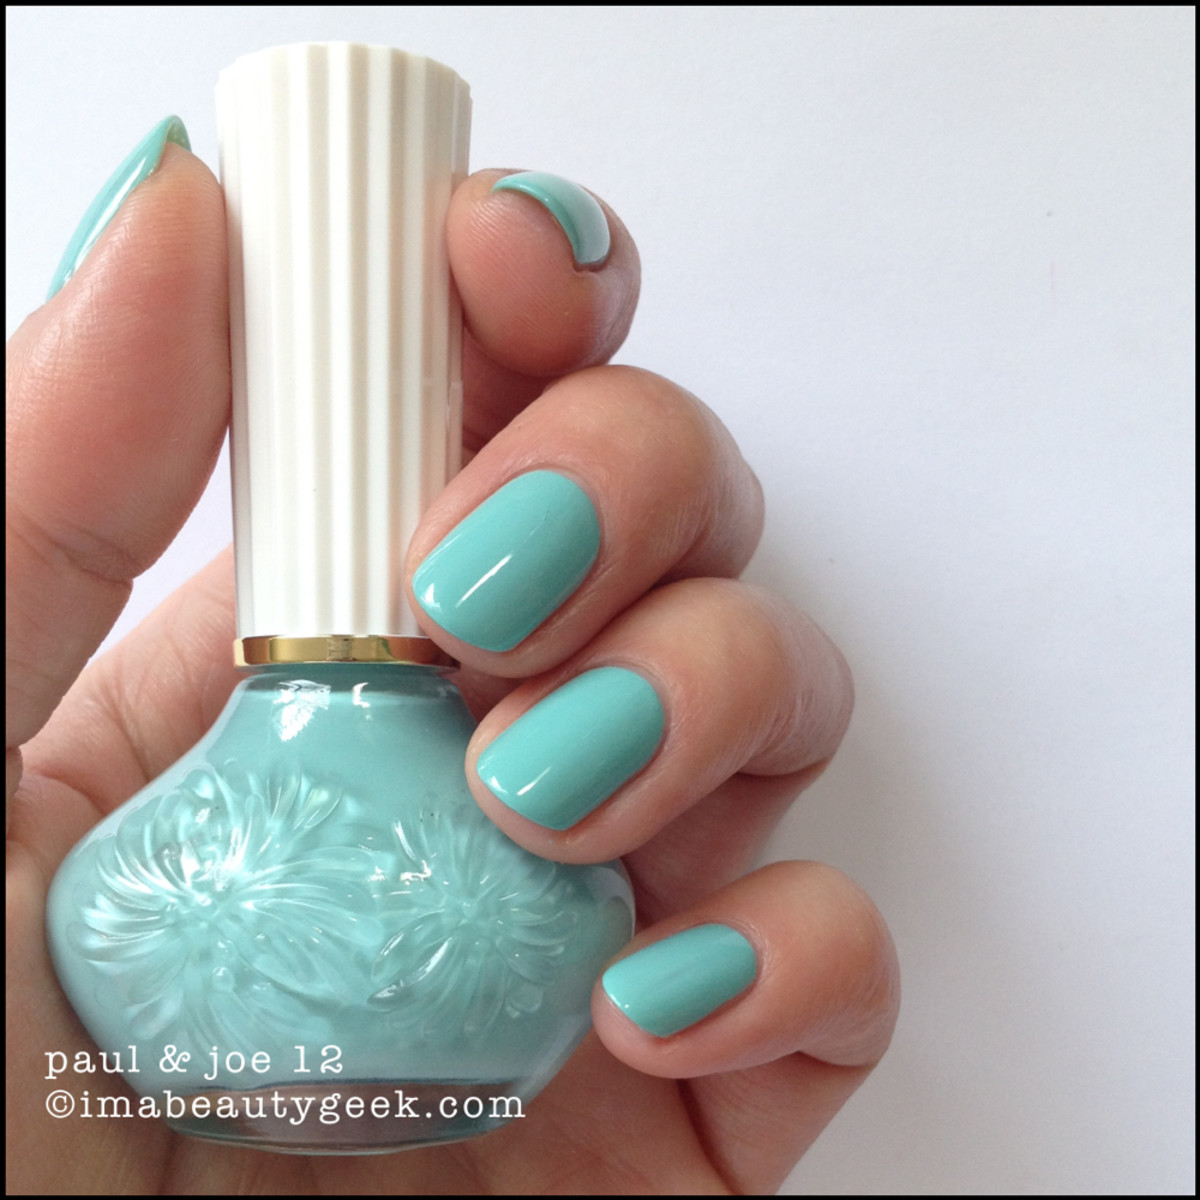 Paul & Joe Nail Polish 12 La Piscine